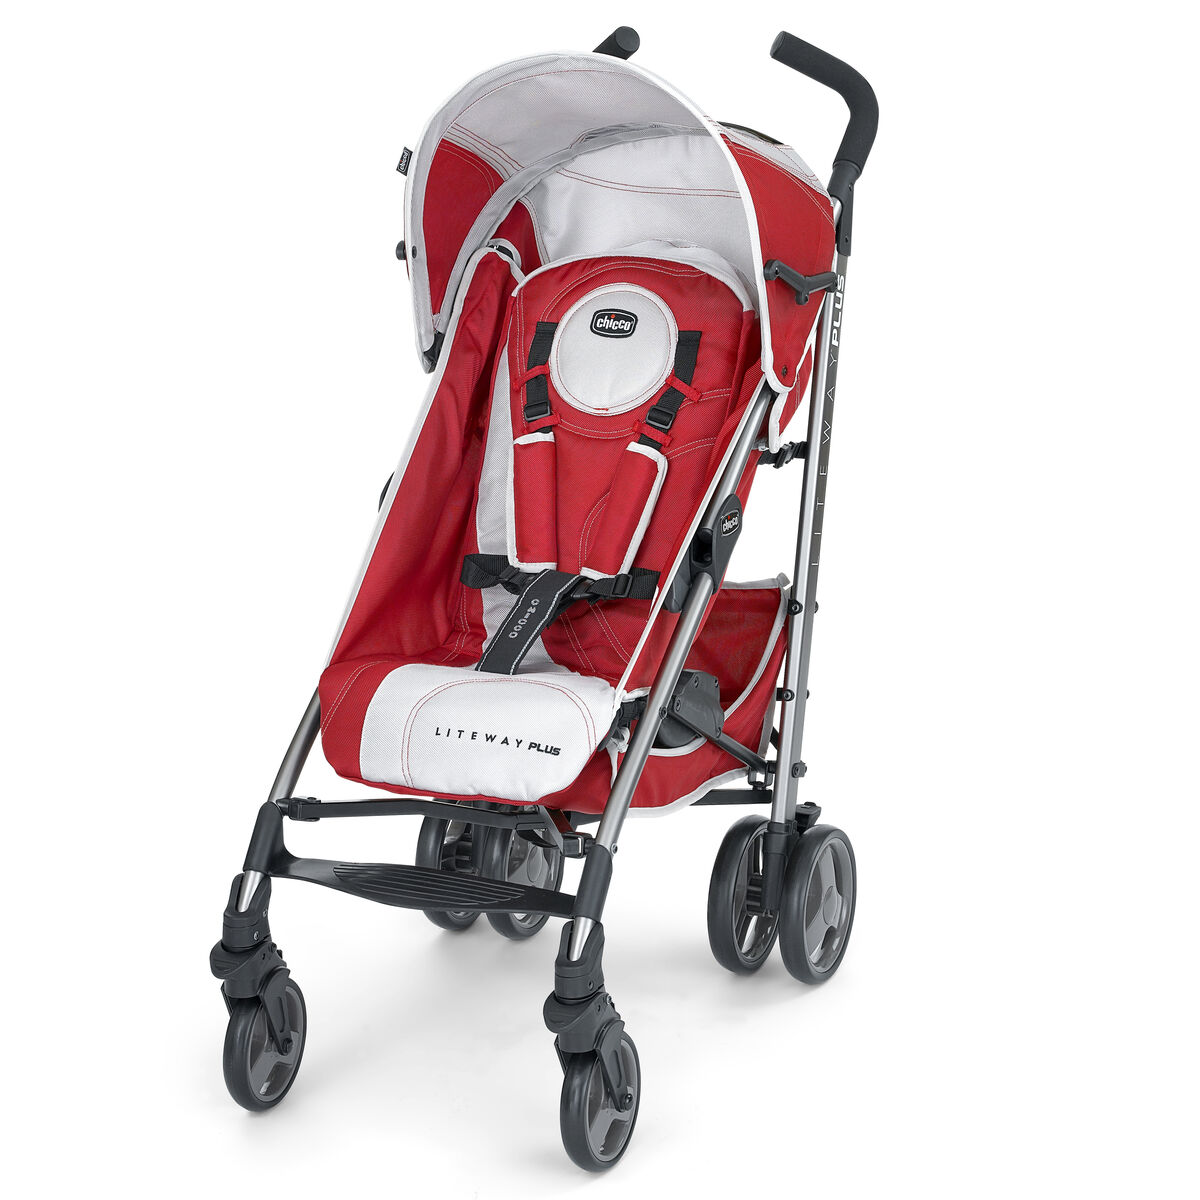 Chicco Chicco Liteway Plus Stroller Snapdragon